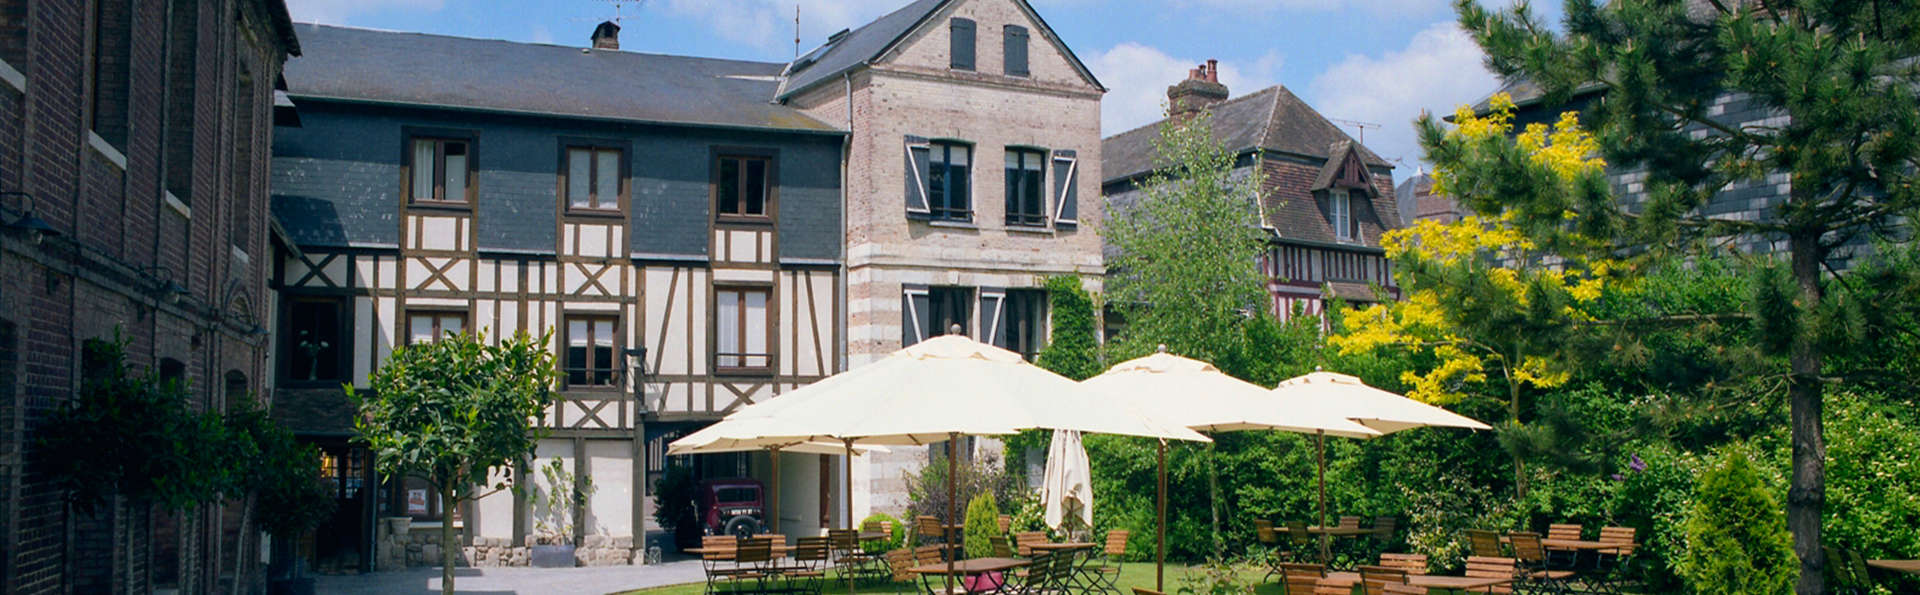 Hôtel La Licorne & Spa 4* - Lyons la forêt, France on